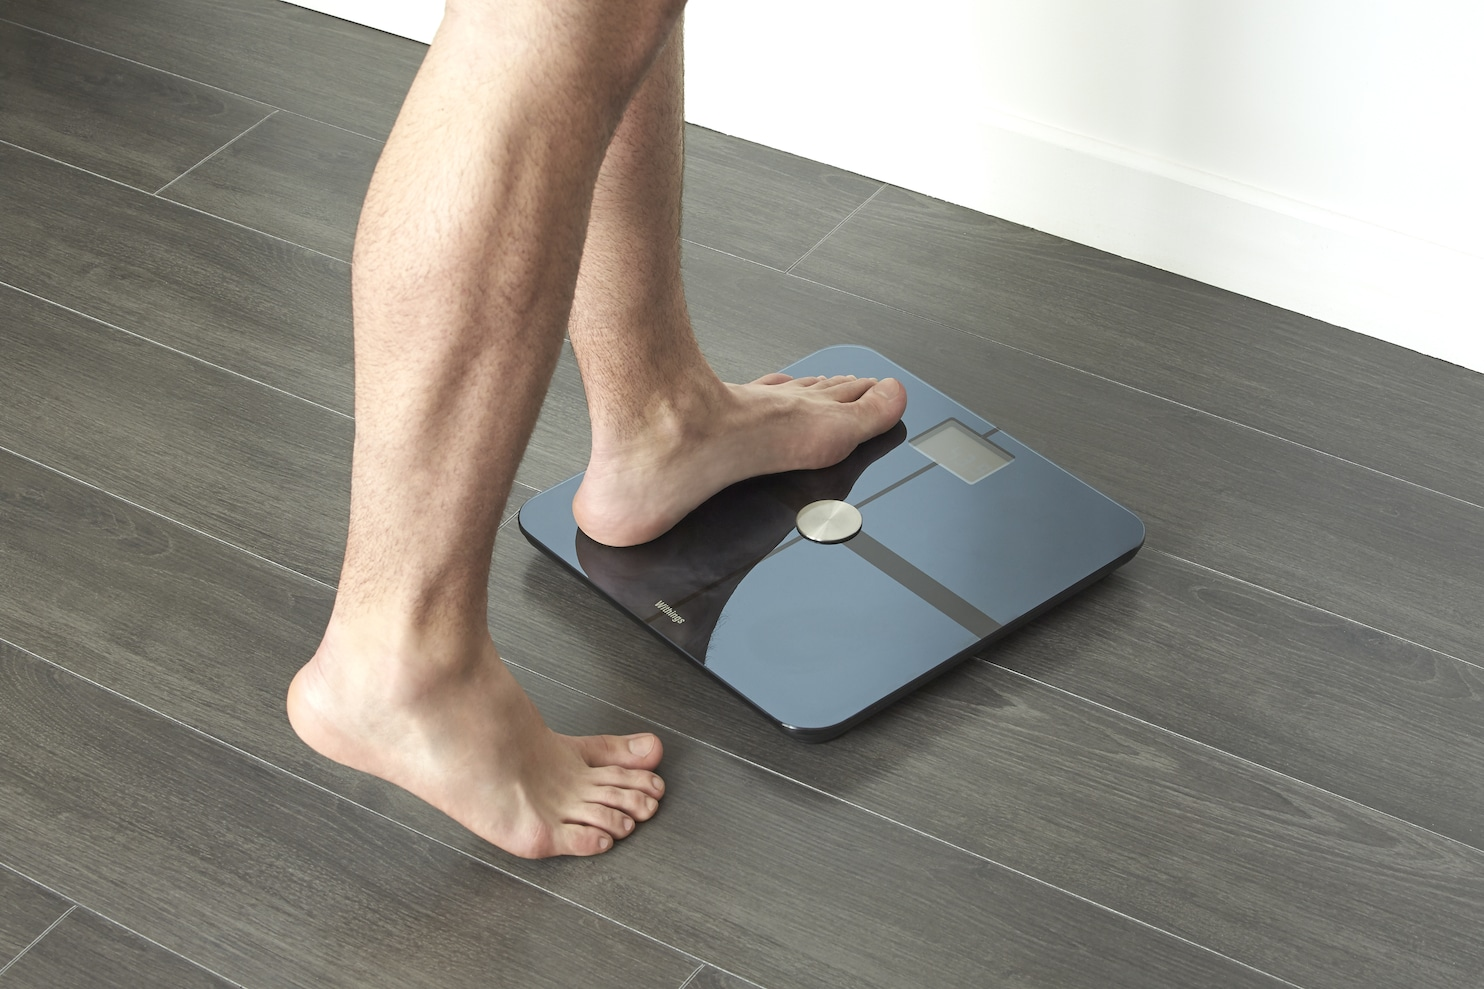 Weighty Decision How To Choose The Right Bathroom Scale The Washington Post